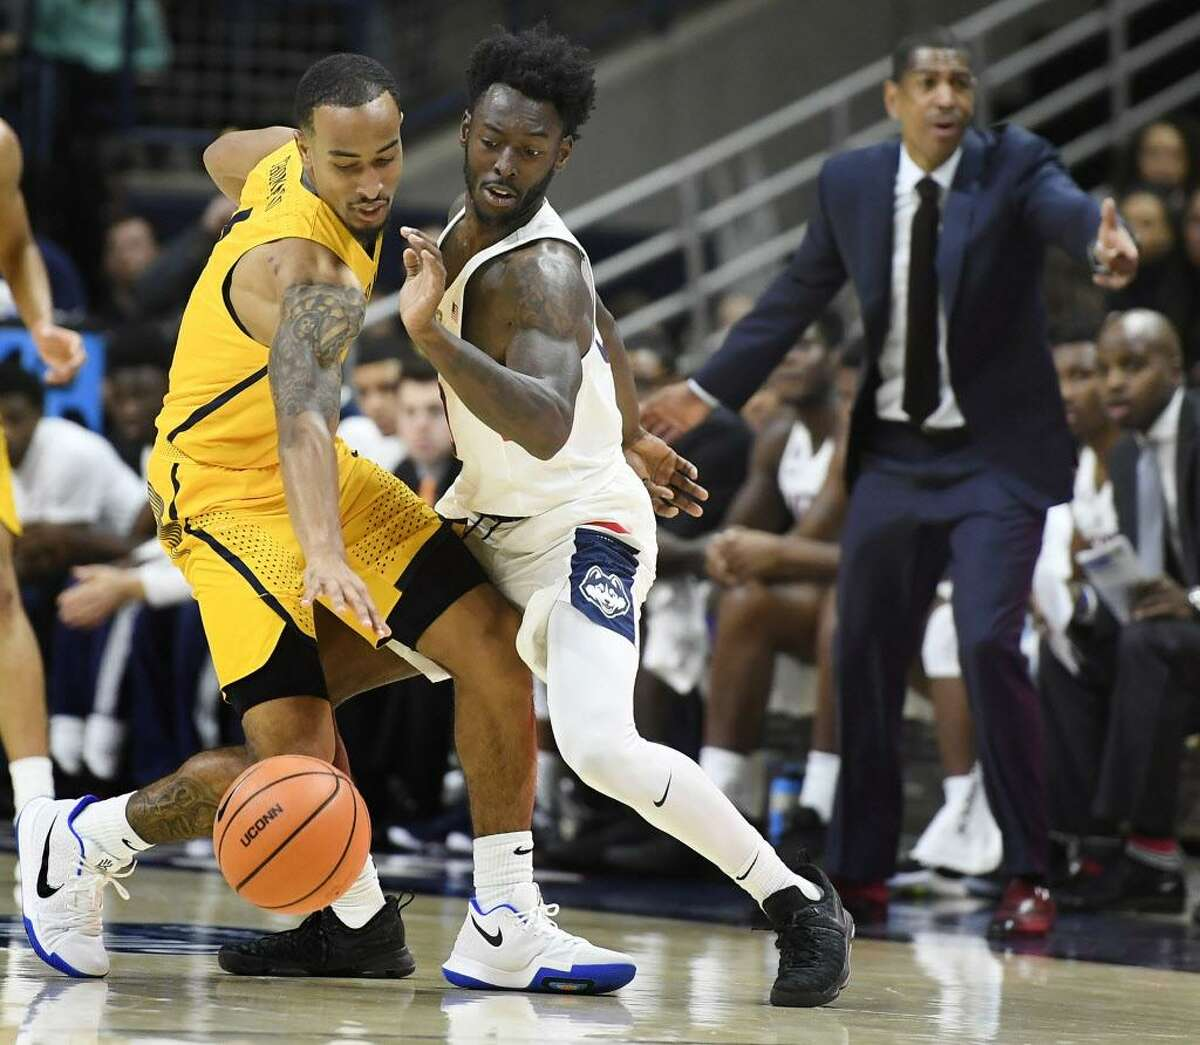 Coppin State's Tre' Thomas, left, is guarded by UConn's Antwoine Anderson, right, during the first half of an NCAA college basketball game, Saturday in Storrs.